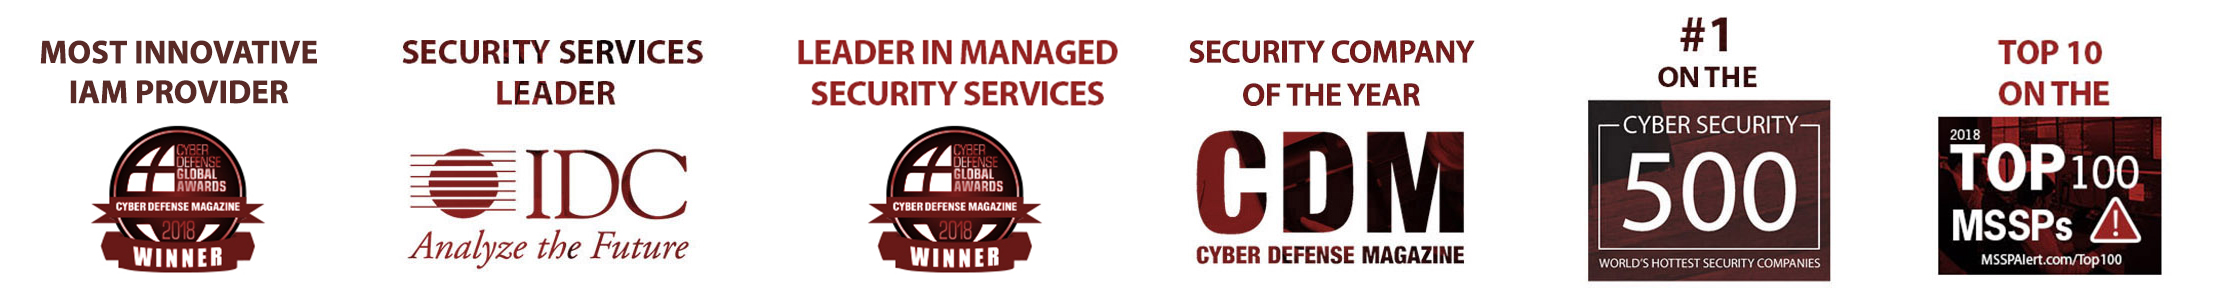 #1 on the Cybersecurity 500, Top 10 MSSP's on MSSP Alert